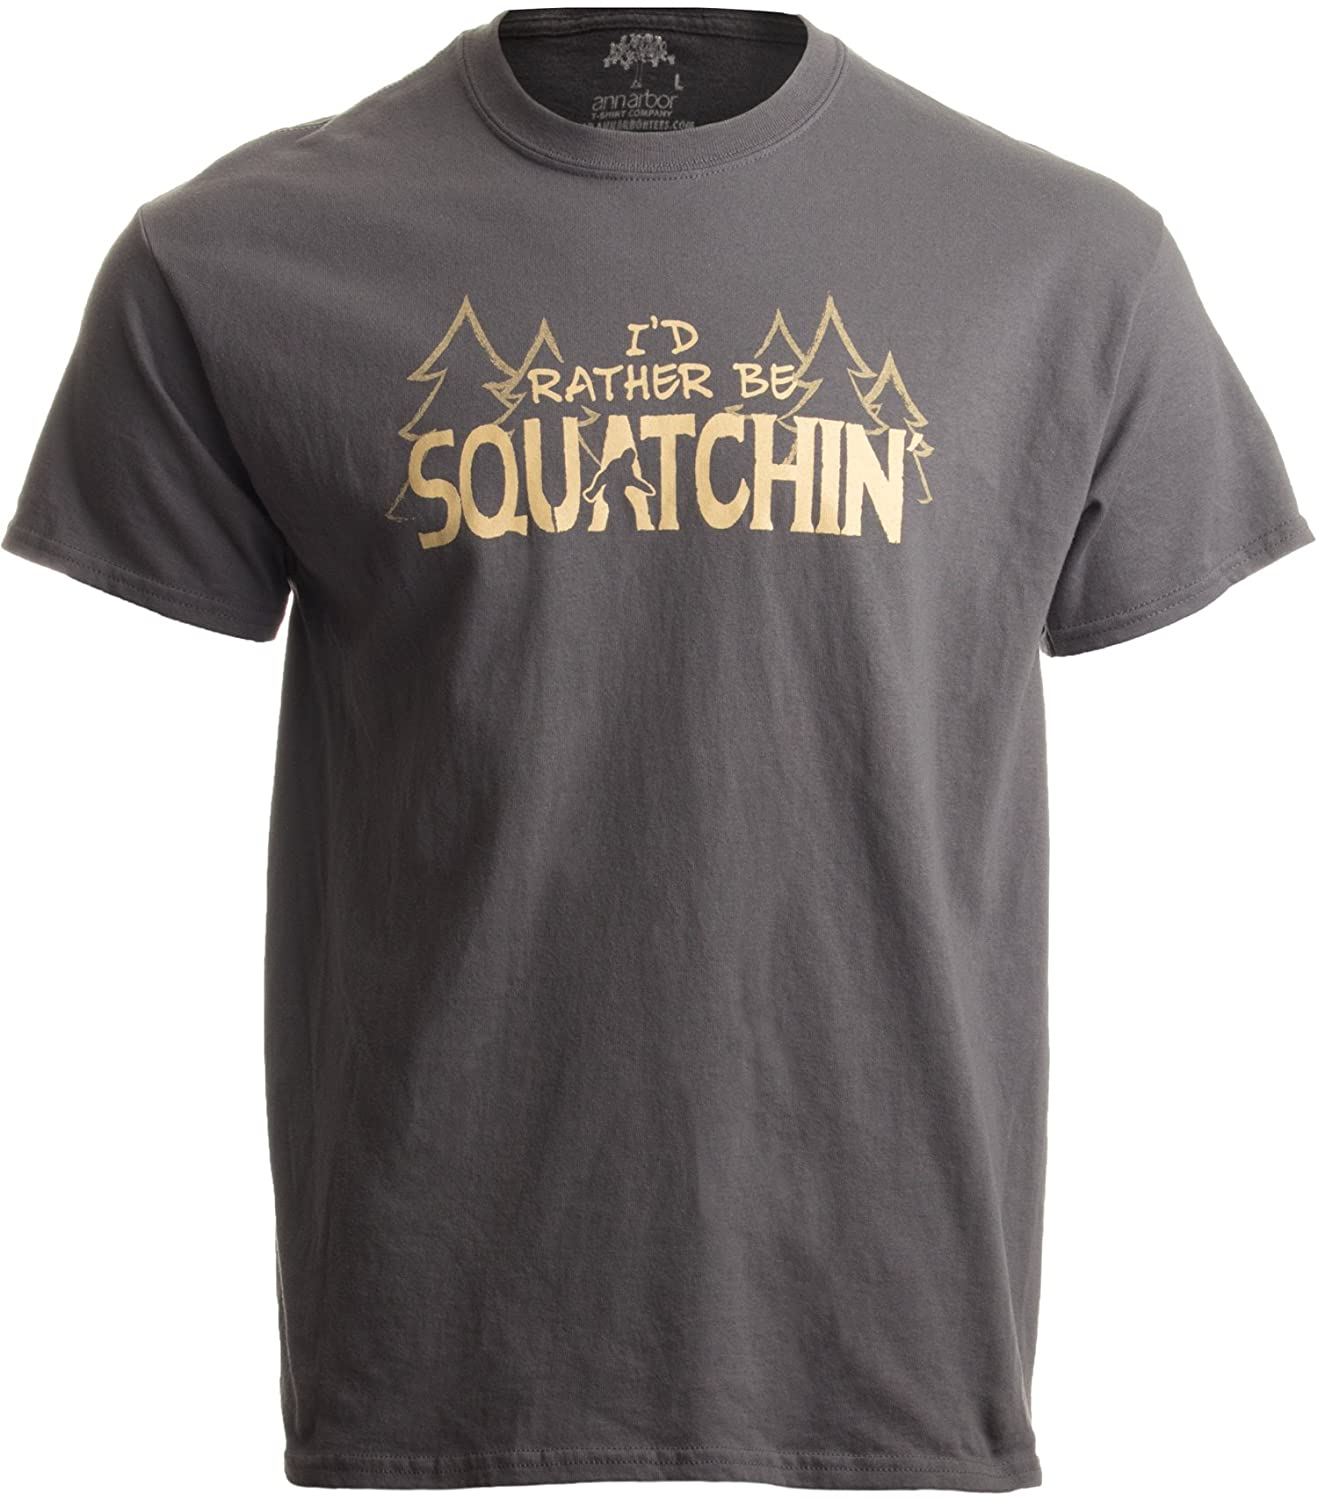 9783802a2 Amazon.com: I'd Rather be Squatchin' | Funny Official Gone Bigfoot Sasquatch  Hunter T-Shirt: Clothing